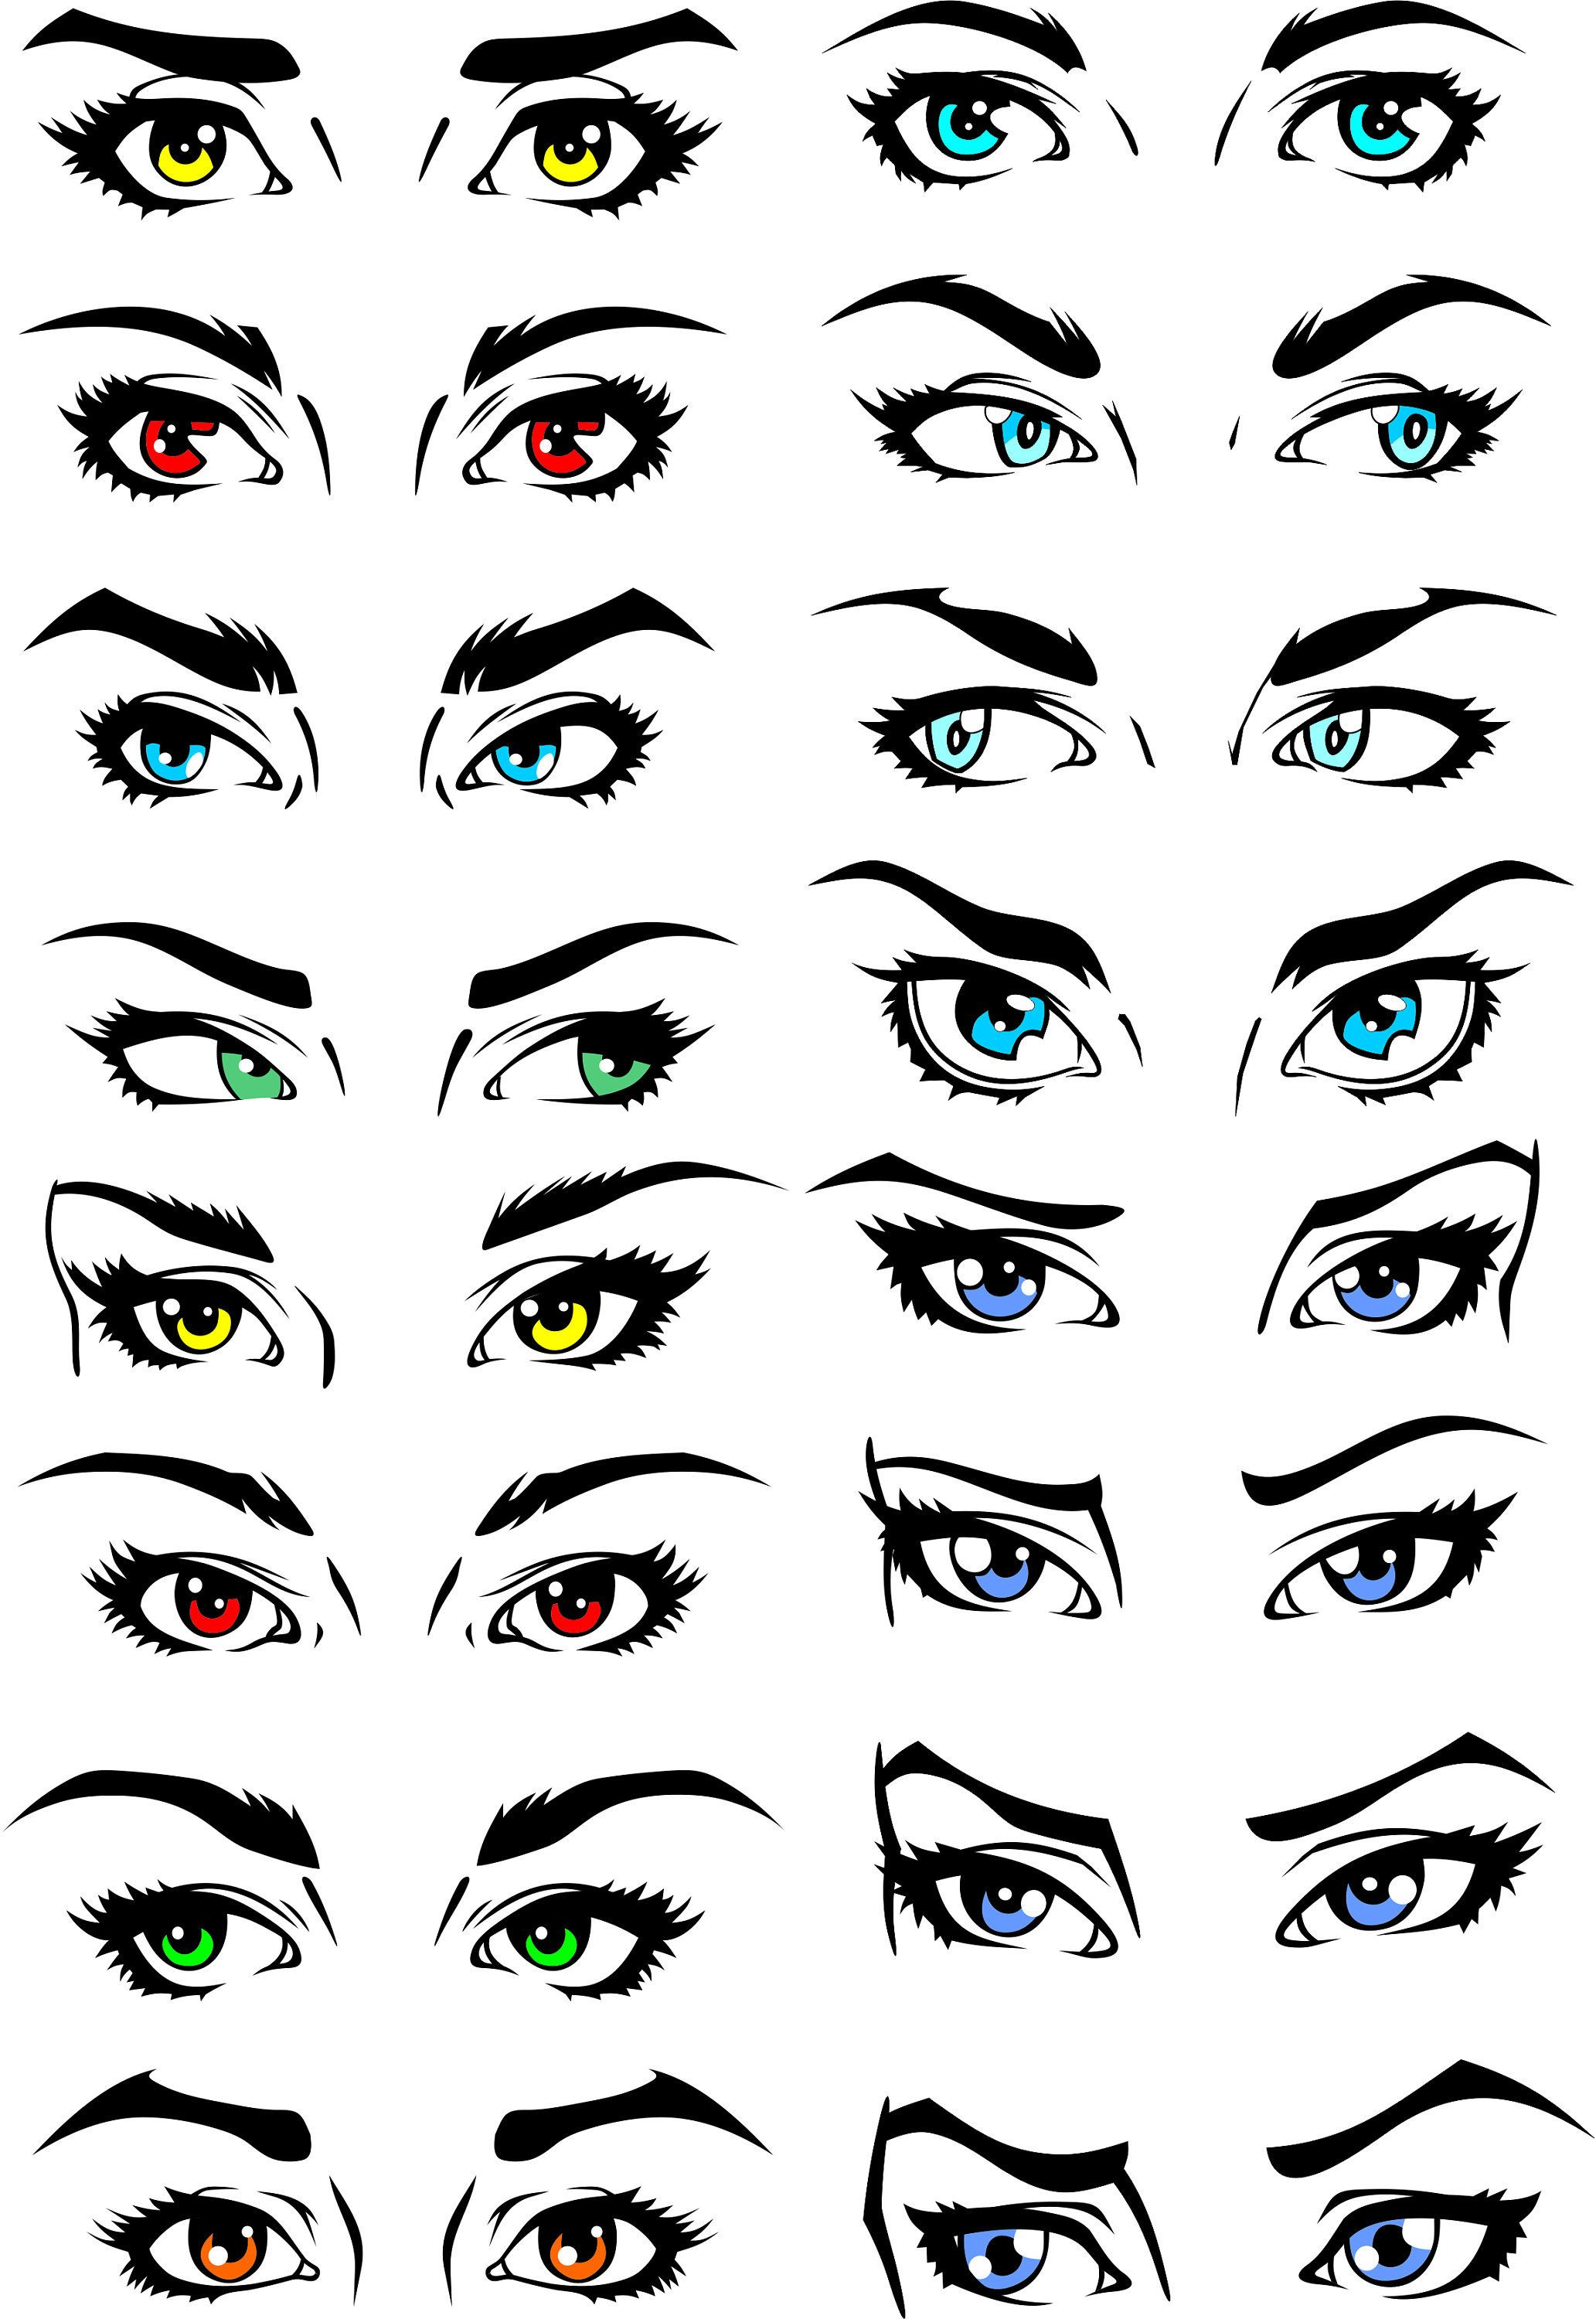 Set Of Human Eyes Clipart Shine Look View Svg Cdr Png Etsy In 2020 Eyes Clipart Girl Eyes Drawing Anime Eyebrows